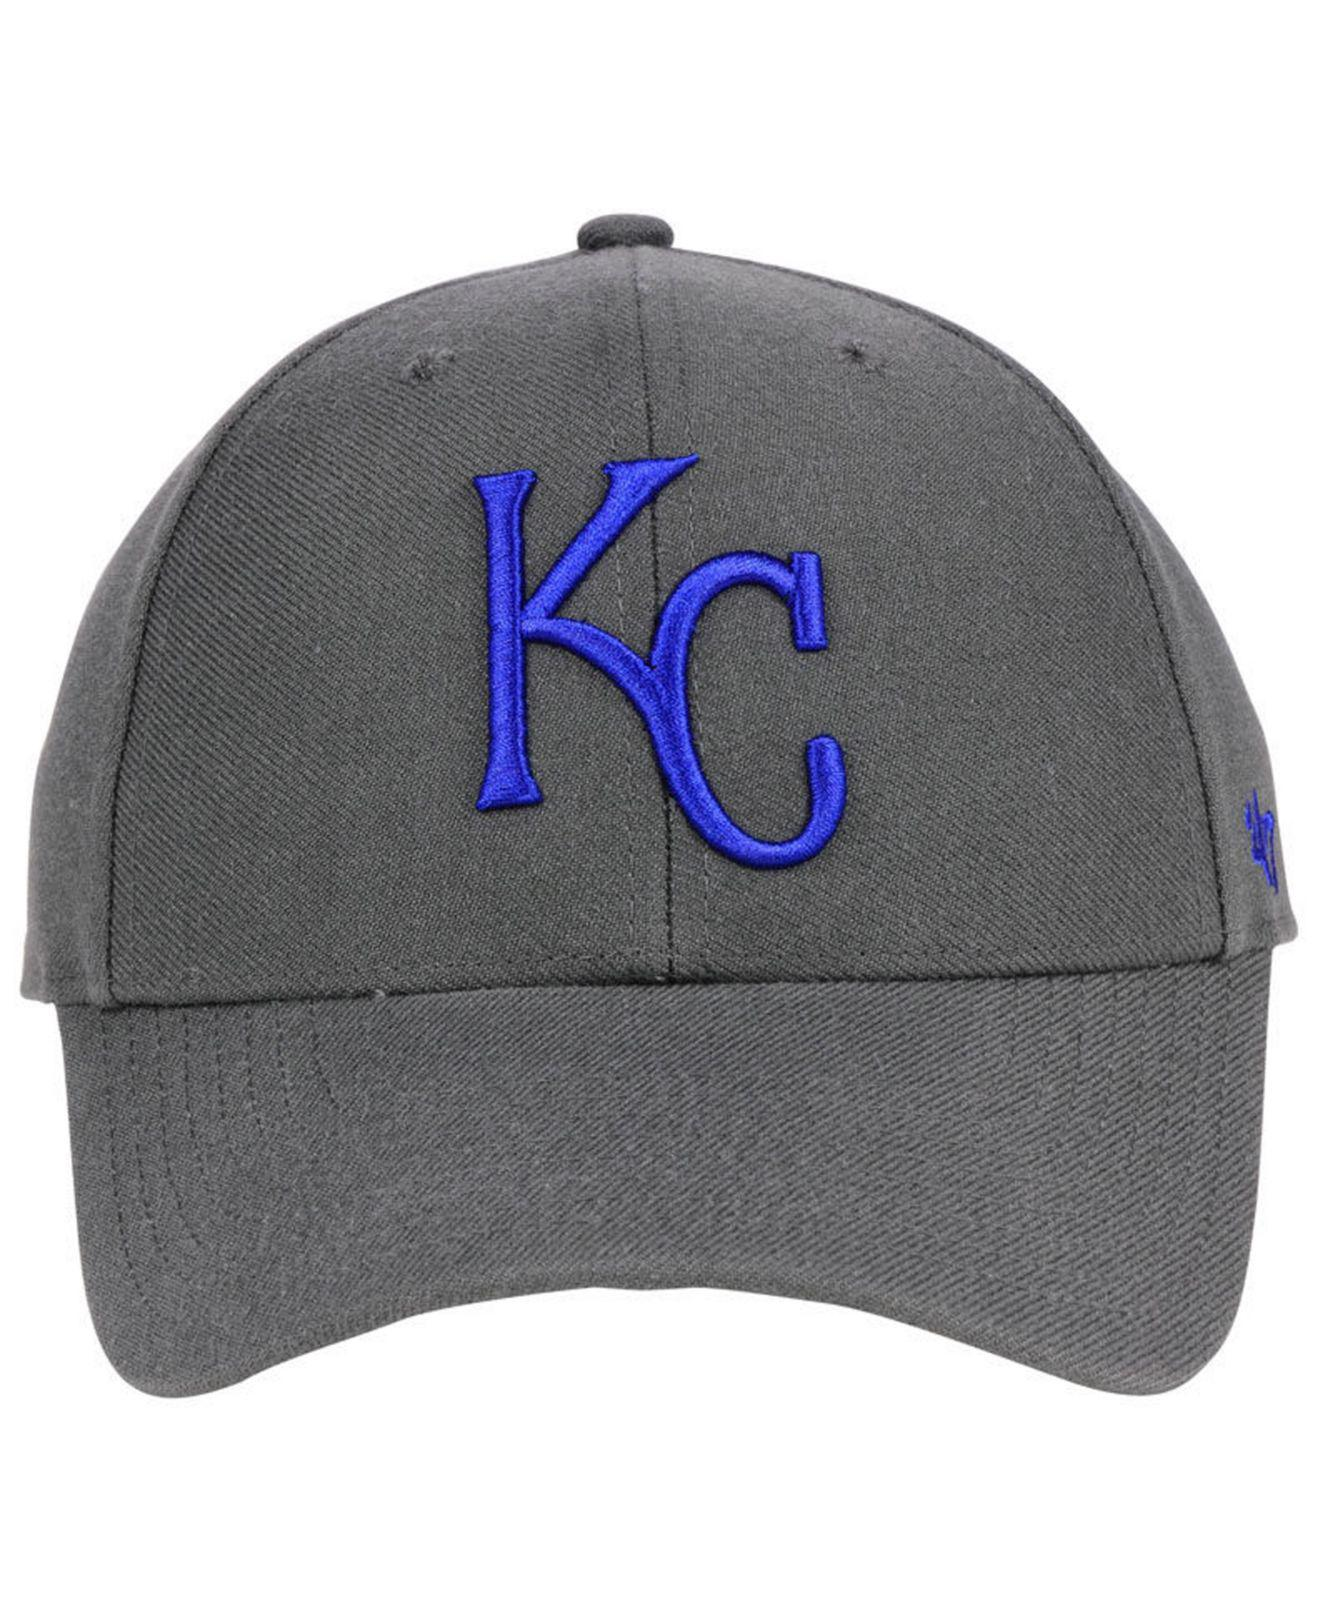 online retailer d0722 8b719 ... cheapest lyst 47 brand kansas city royals charcoal mvp cap in gray for  men d22fd 12f99